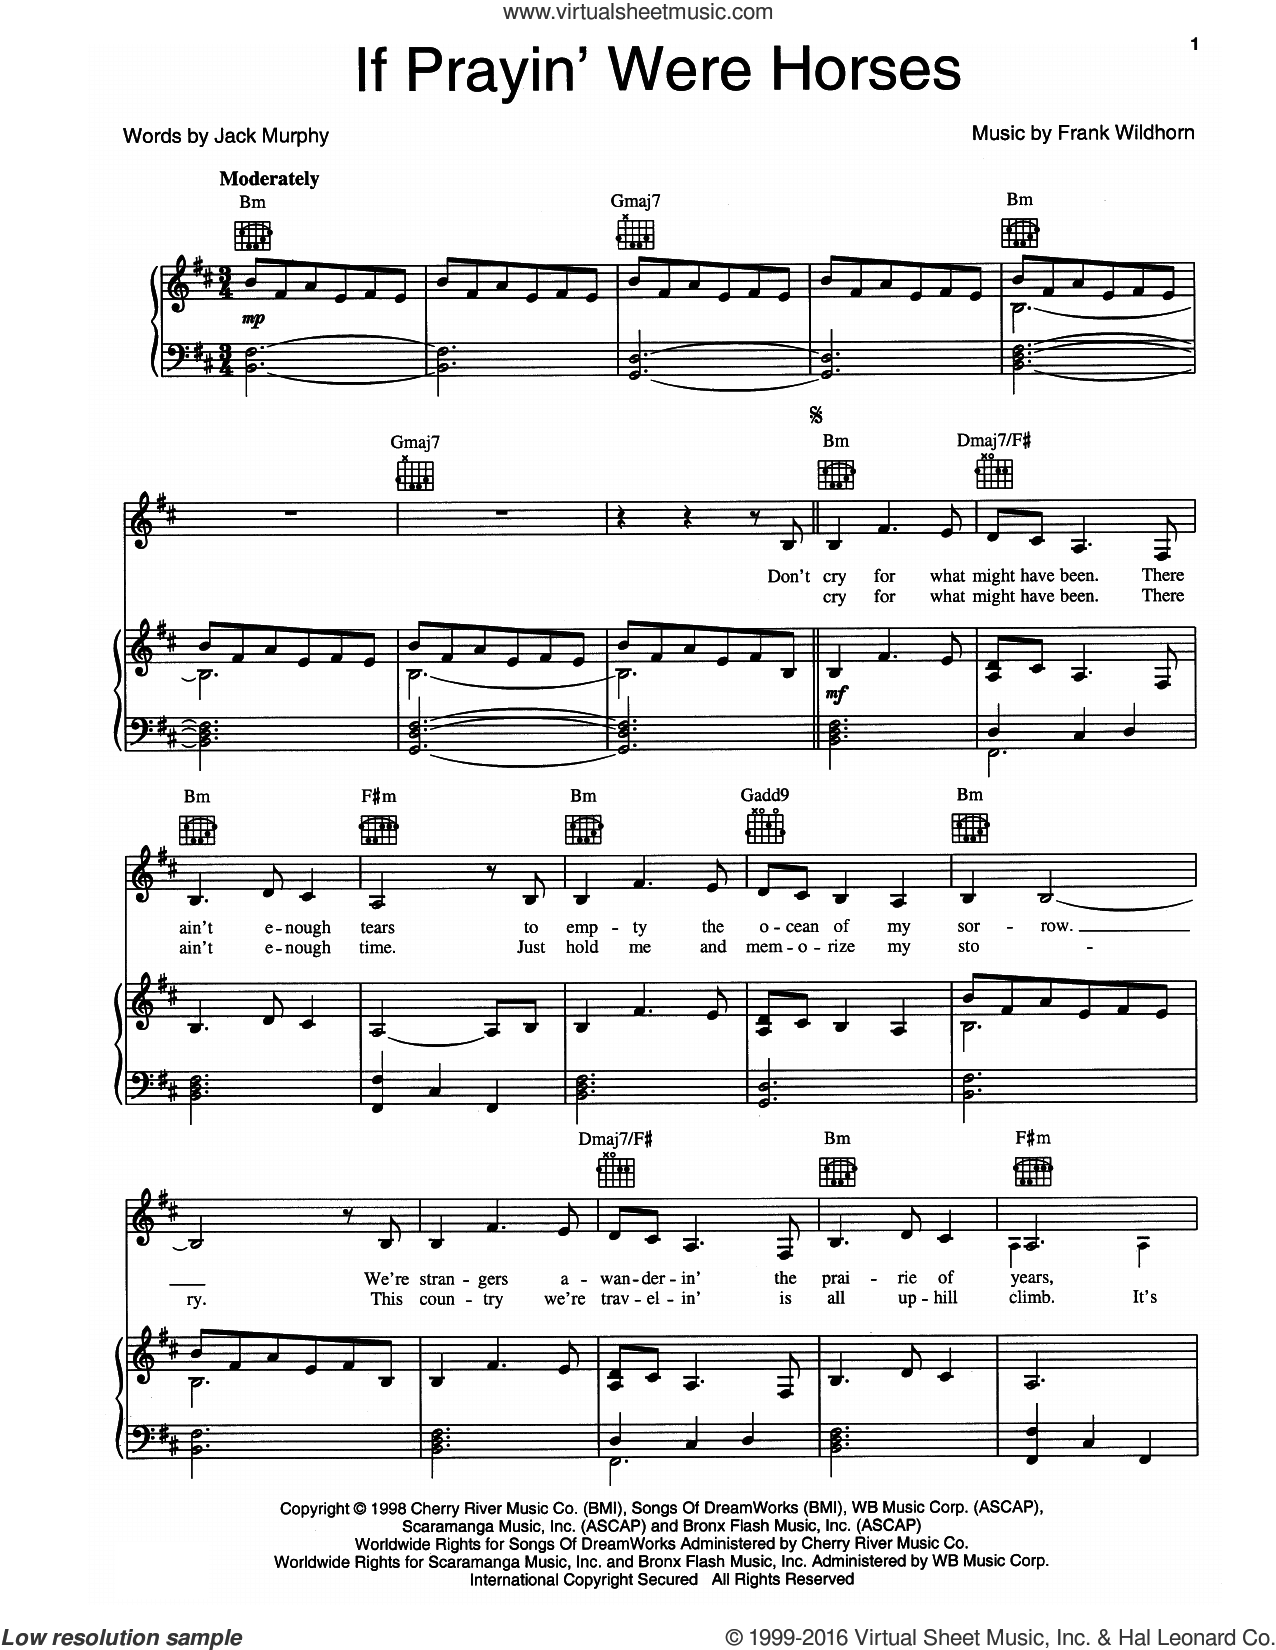 If Prayin' Were Horses sheet music for voice, piano or guitar by Frank Wildhorn and Jack Murphy, intermediate skill level